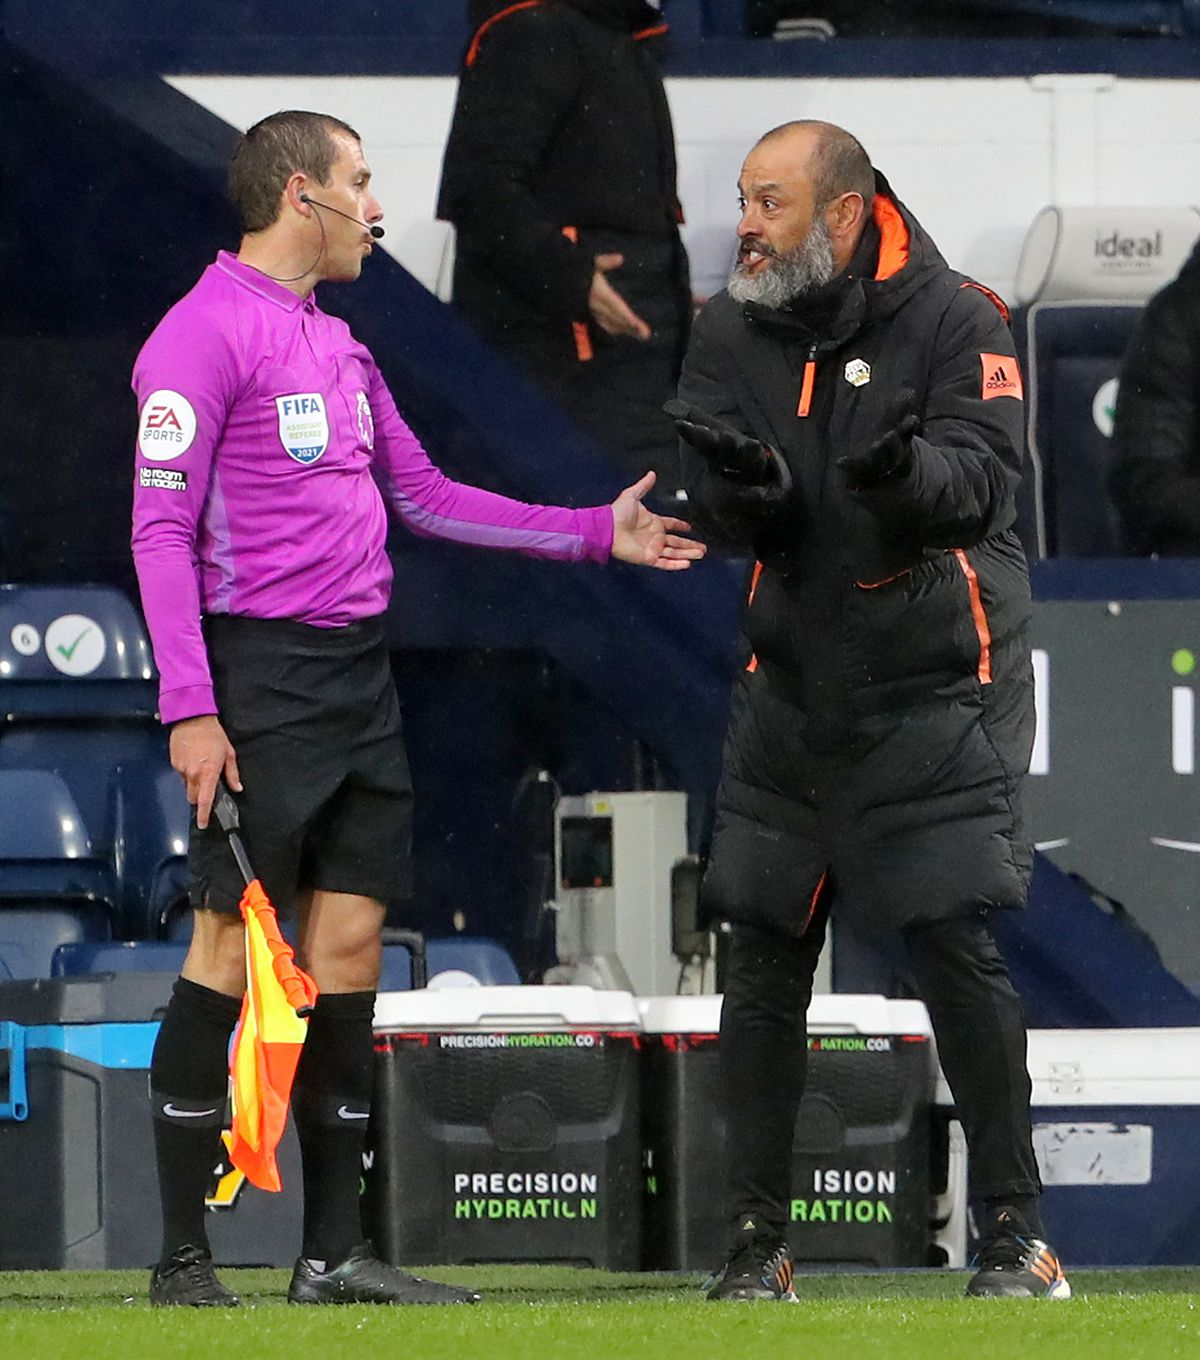 """Wolverhampton Wanderers manager Nuno Espirito Santo appeals to the linesman during the Premier League match at The Hawthorns, West Bromwich. Issue date: Monday May 3, 2021. PA Photo. See PA story SOCCER West Brom. Photo credit should read: Geoff Caddick/PA Wire. ..RESTRICTIONS: EDITORIAL USE ONLY No use with unauthorised audio, video, data, fixture lists, club/league logos or """"live"""" services. Online in-match use limited to 120 images, no video emulation. No use in betting, games or single club/league/player publications.."""